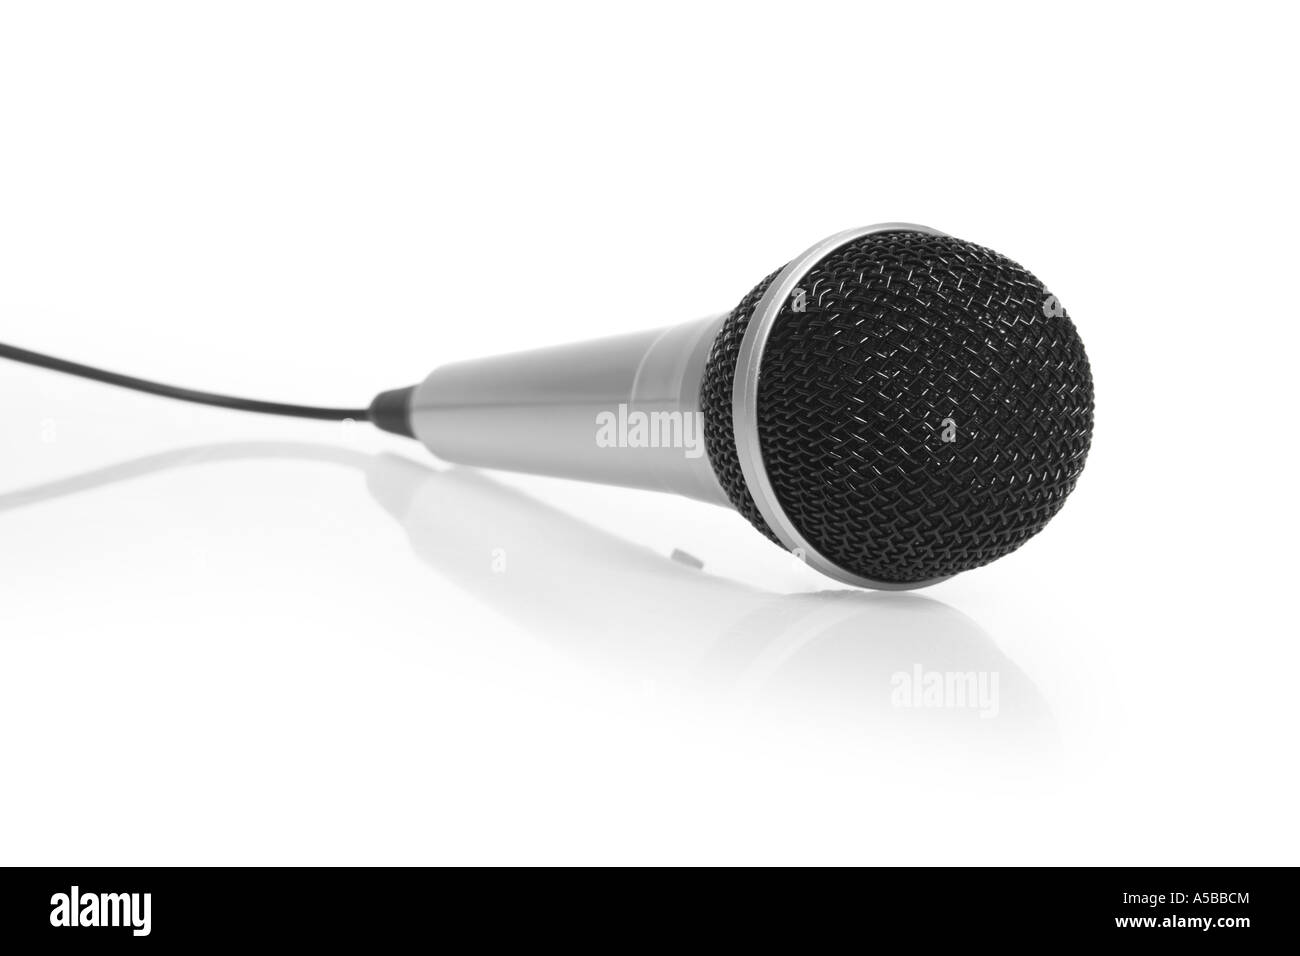 Microphone cut out on white background - Stock Image